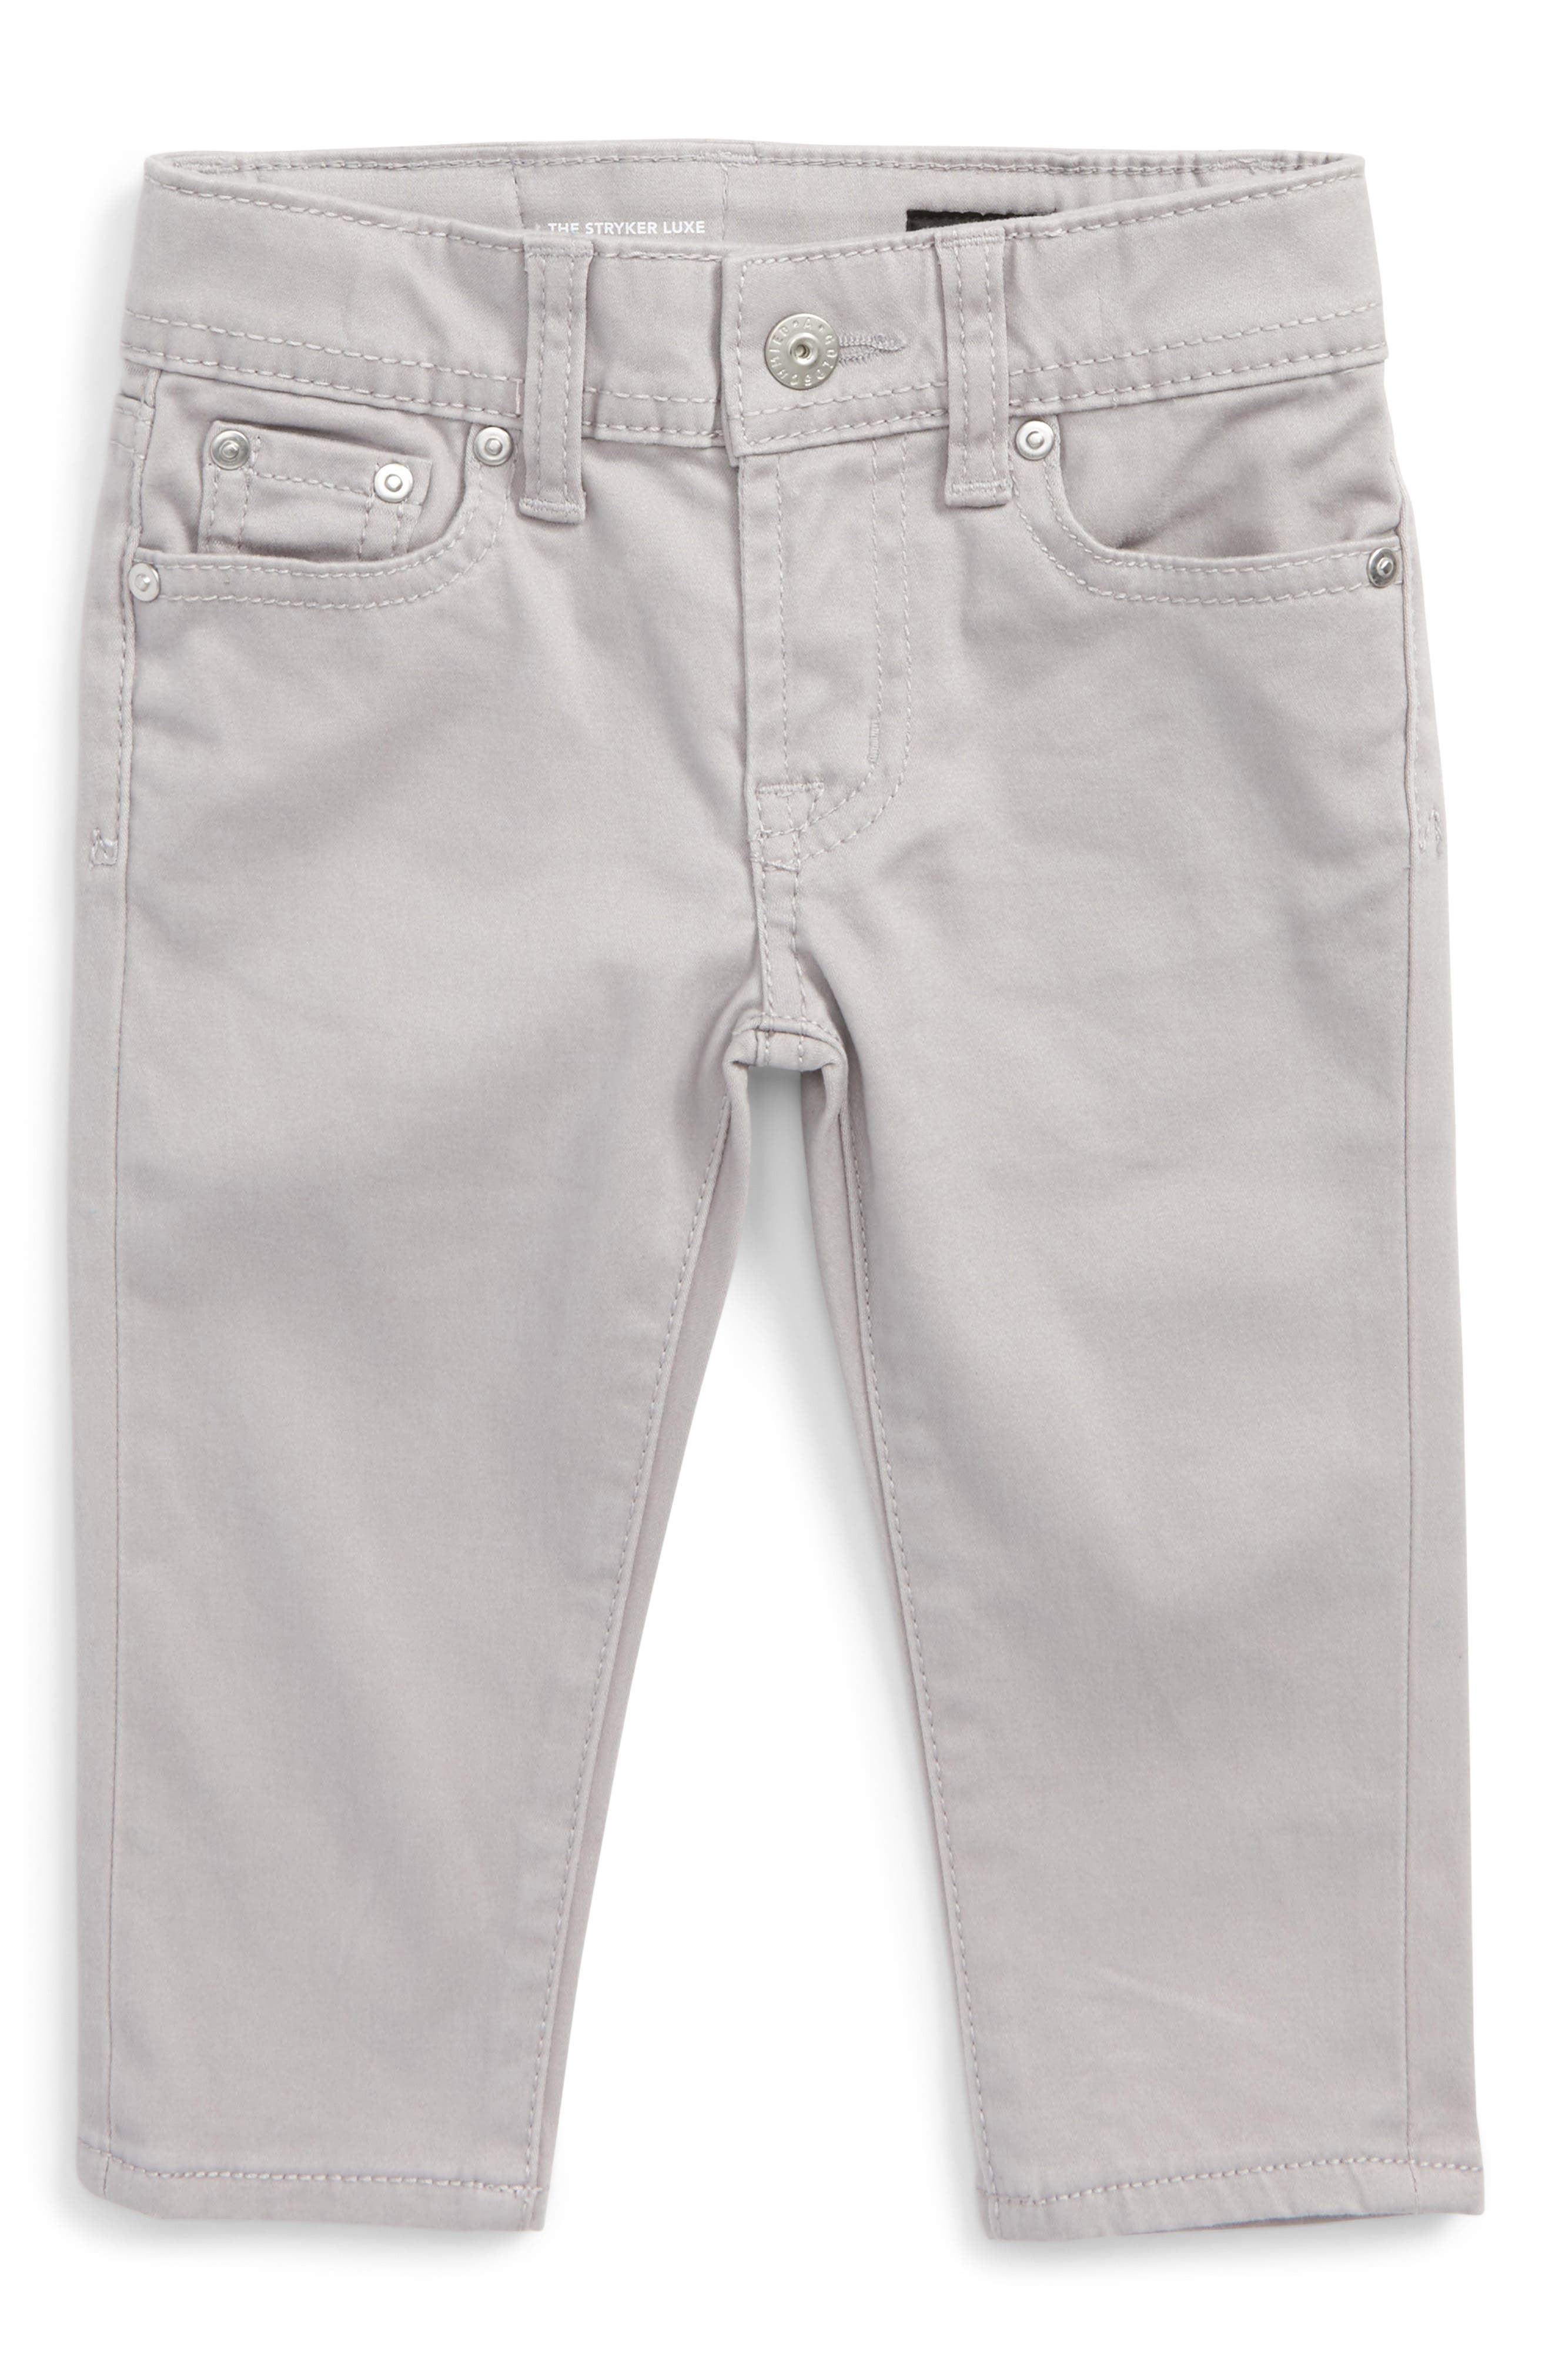 ag adriano goldschmied kids The Stryker Luxe Slim Straight Leg Jeans (Baby Boys)